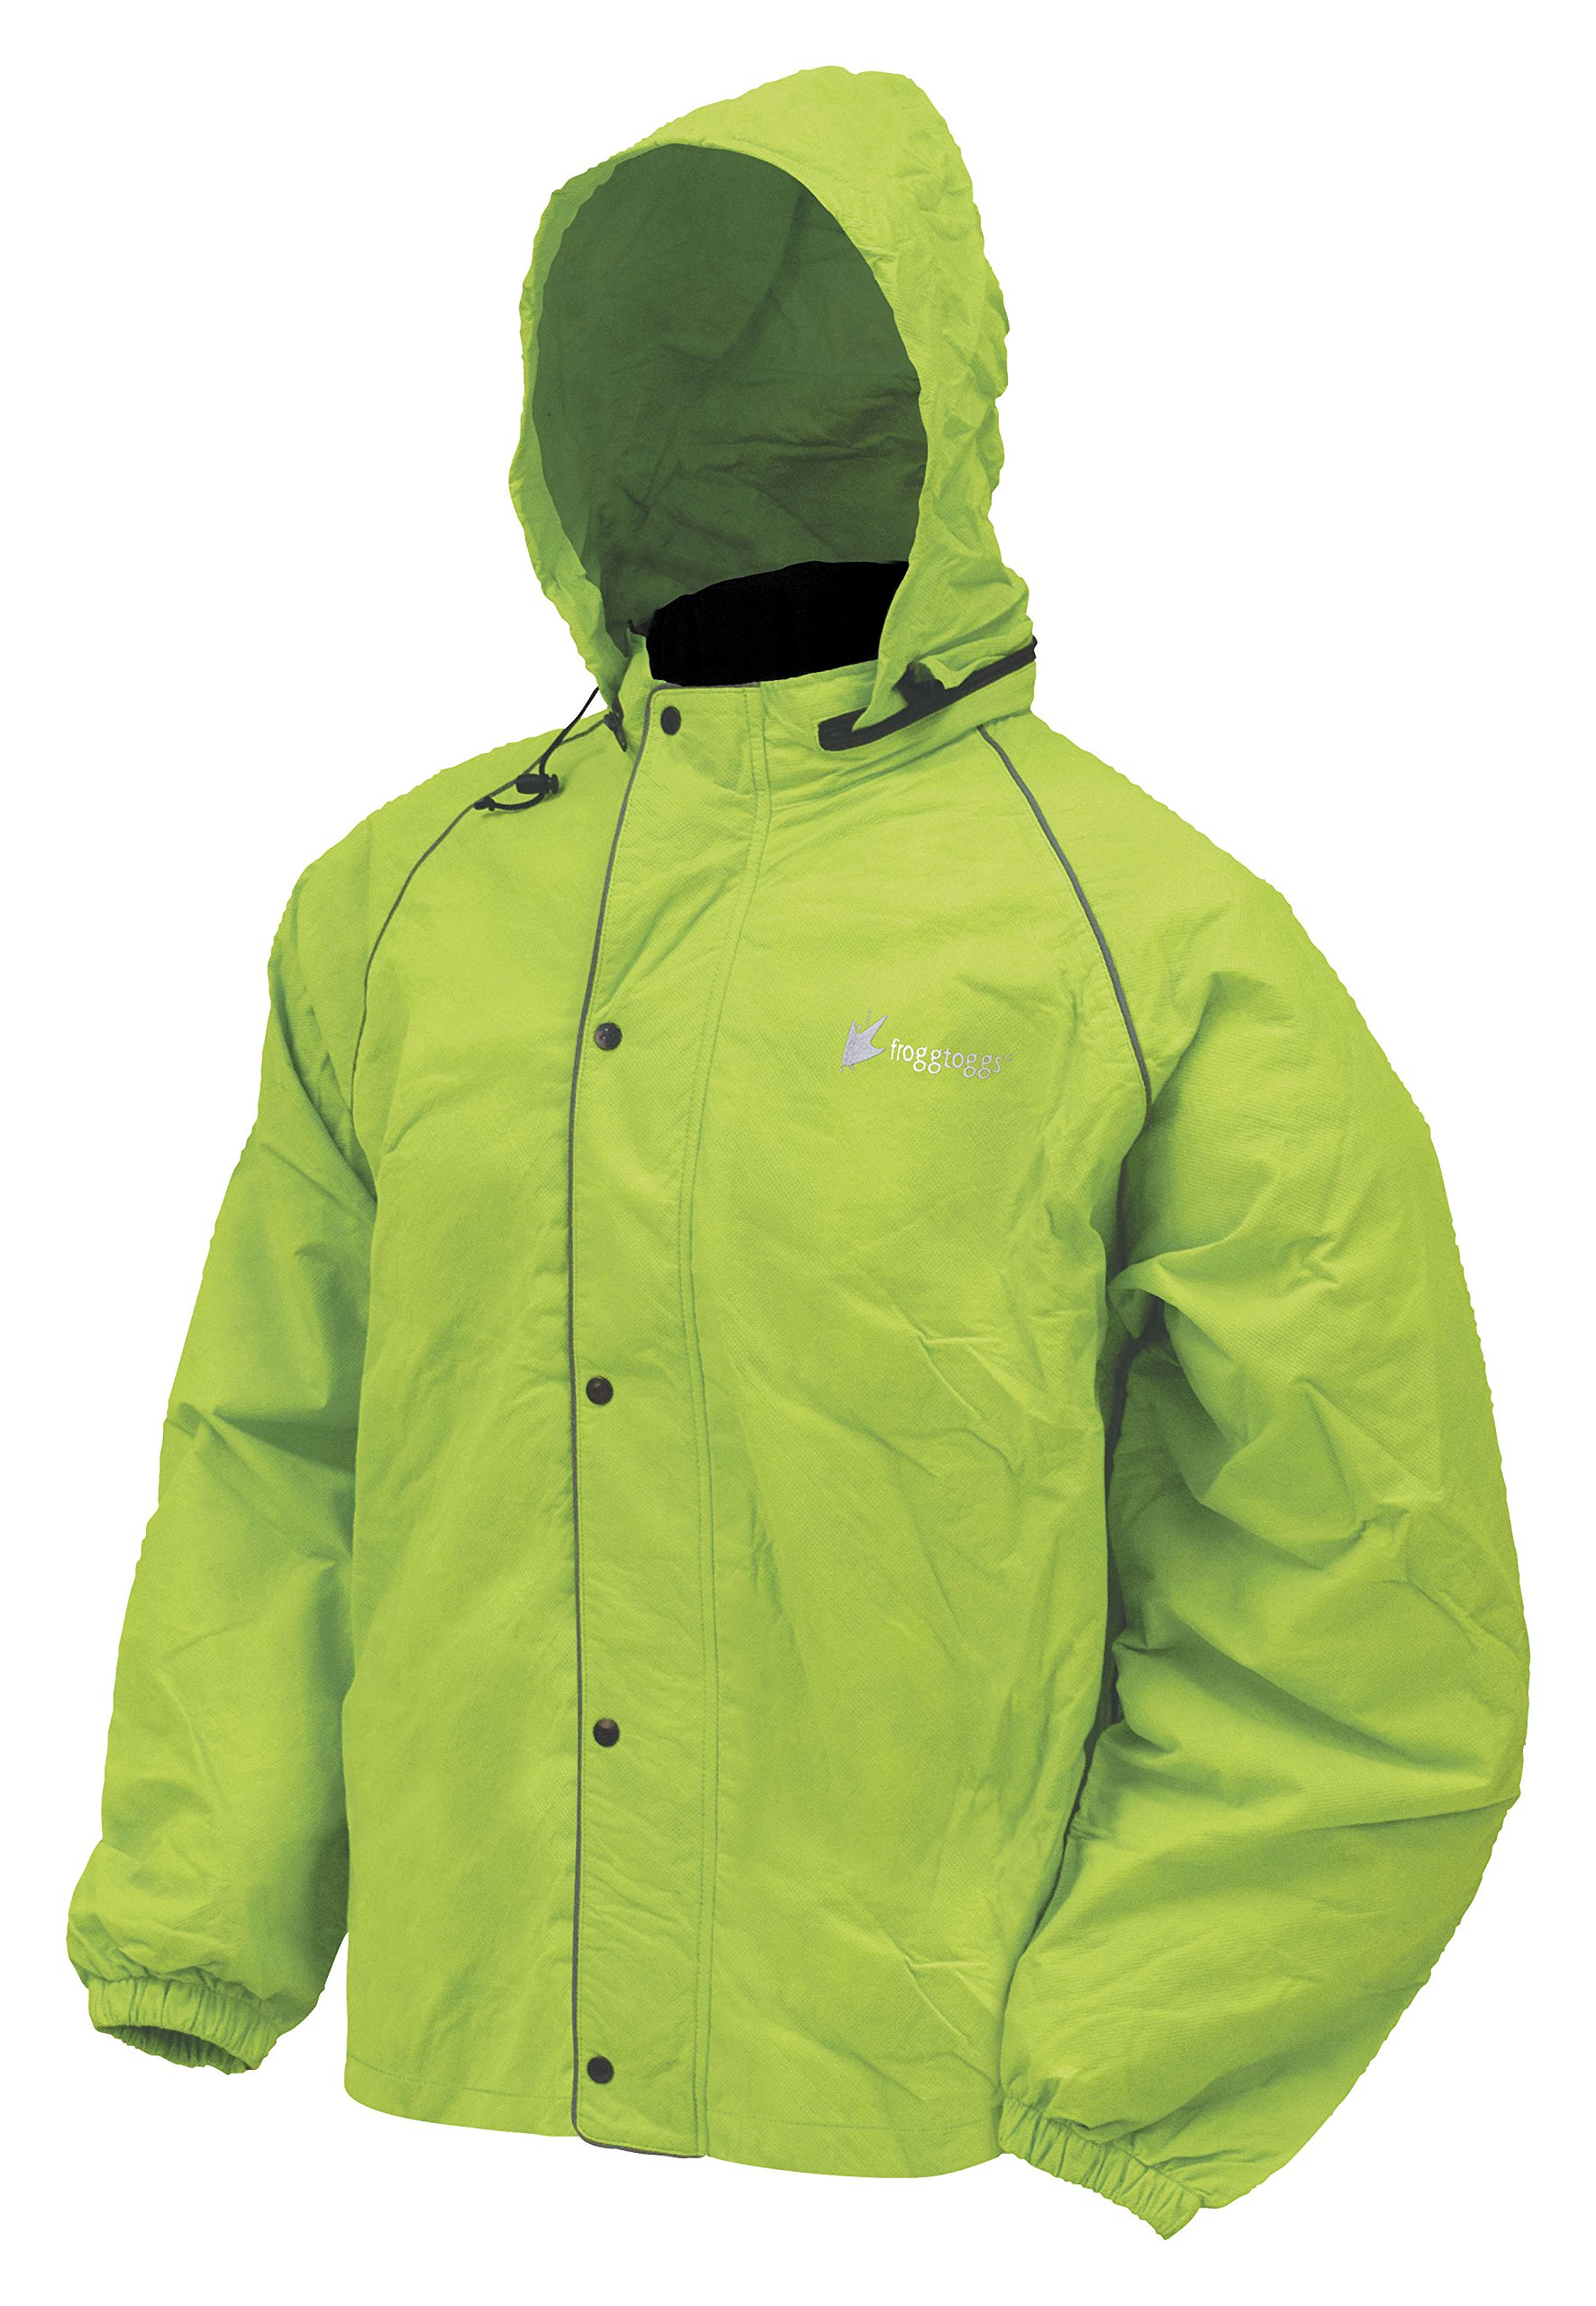 Frogg Toggs Road Toad Reflective Waterproof Rain Jacket by Frogg Toggs